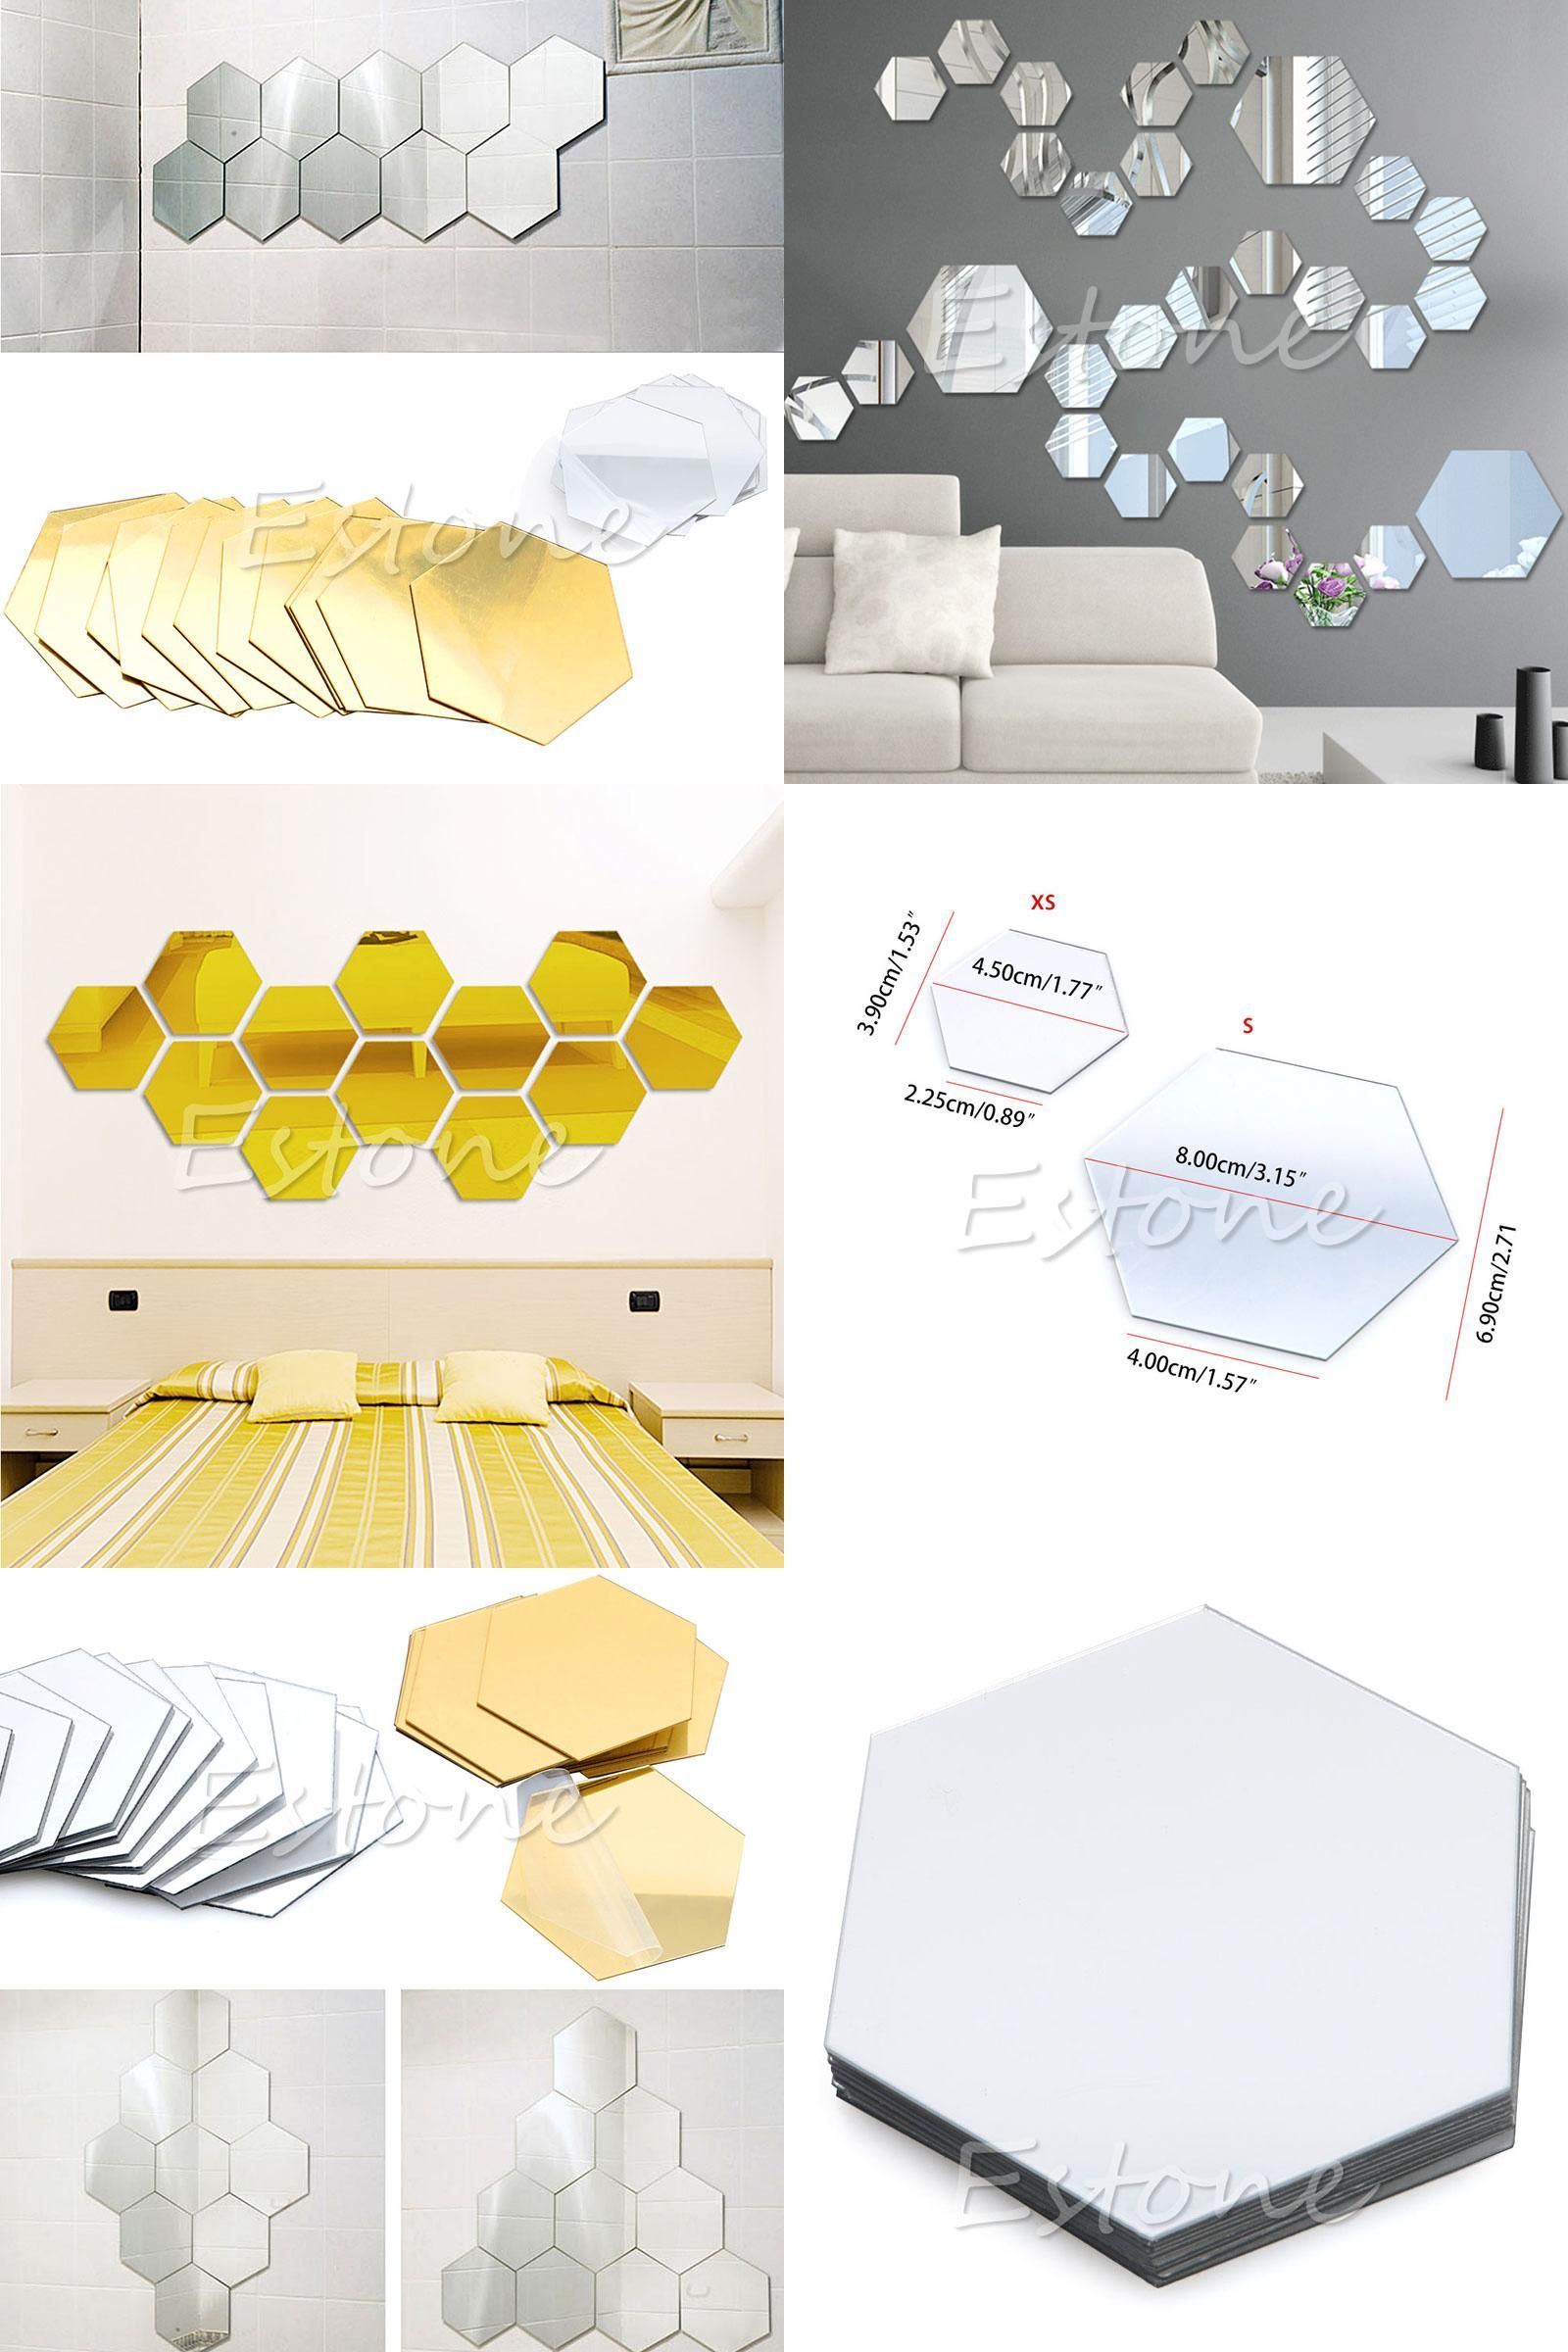 Visit to Buy] New Qualified Wall Stickers 12Pcs 3D Mirror Hexagon ...